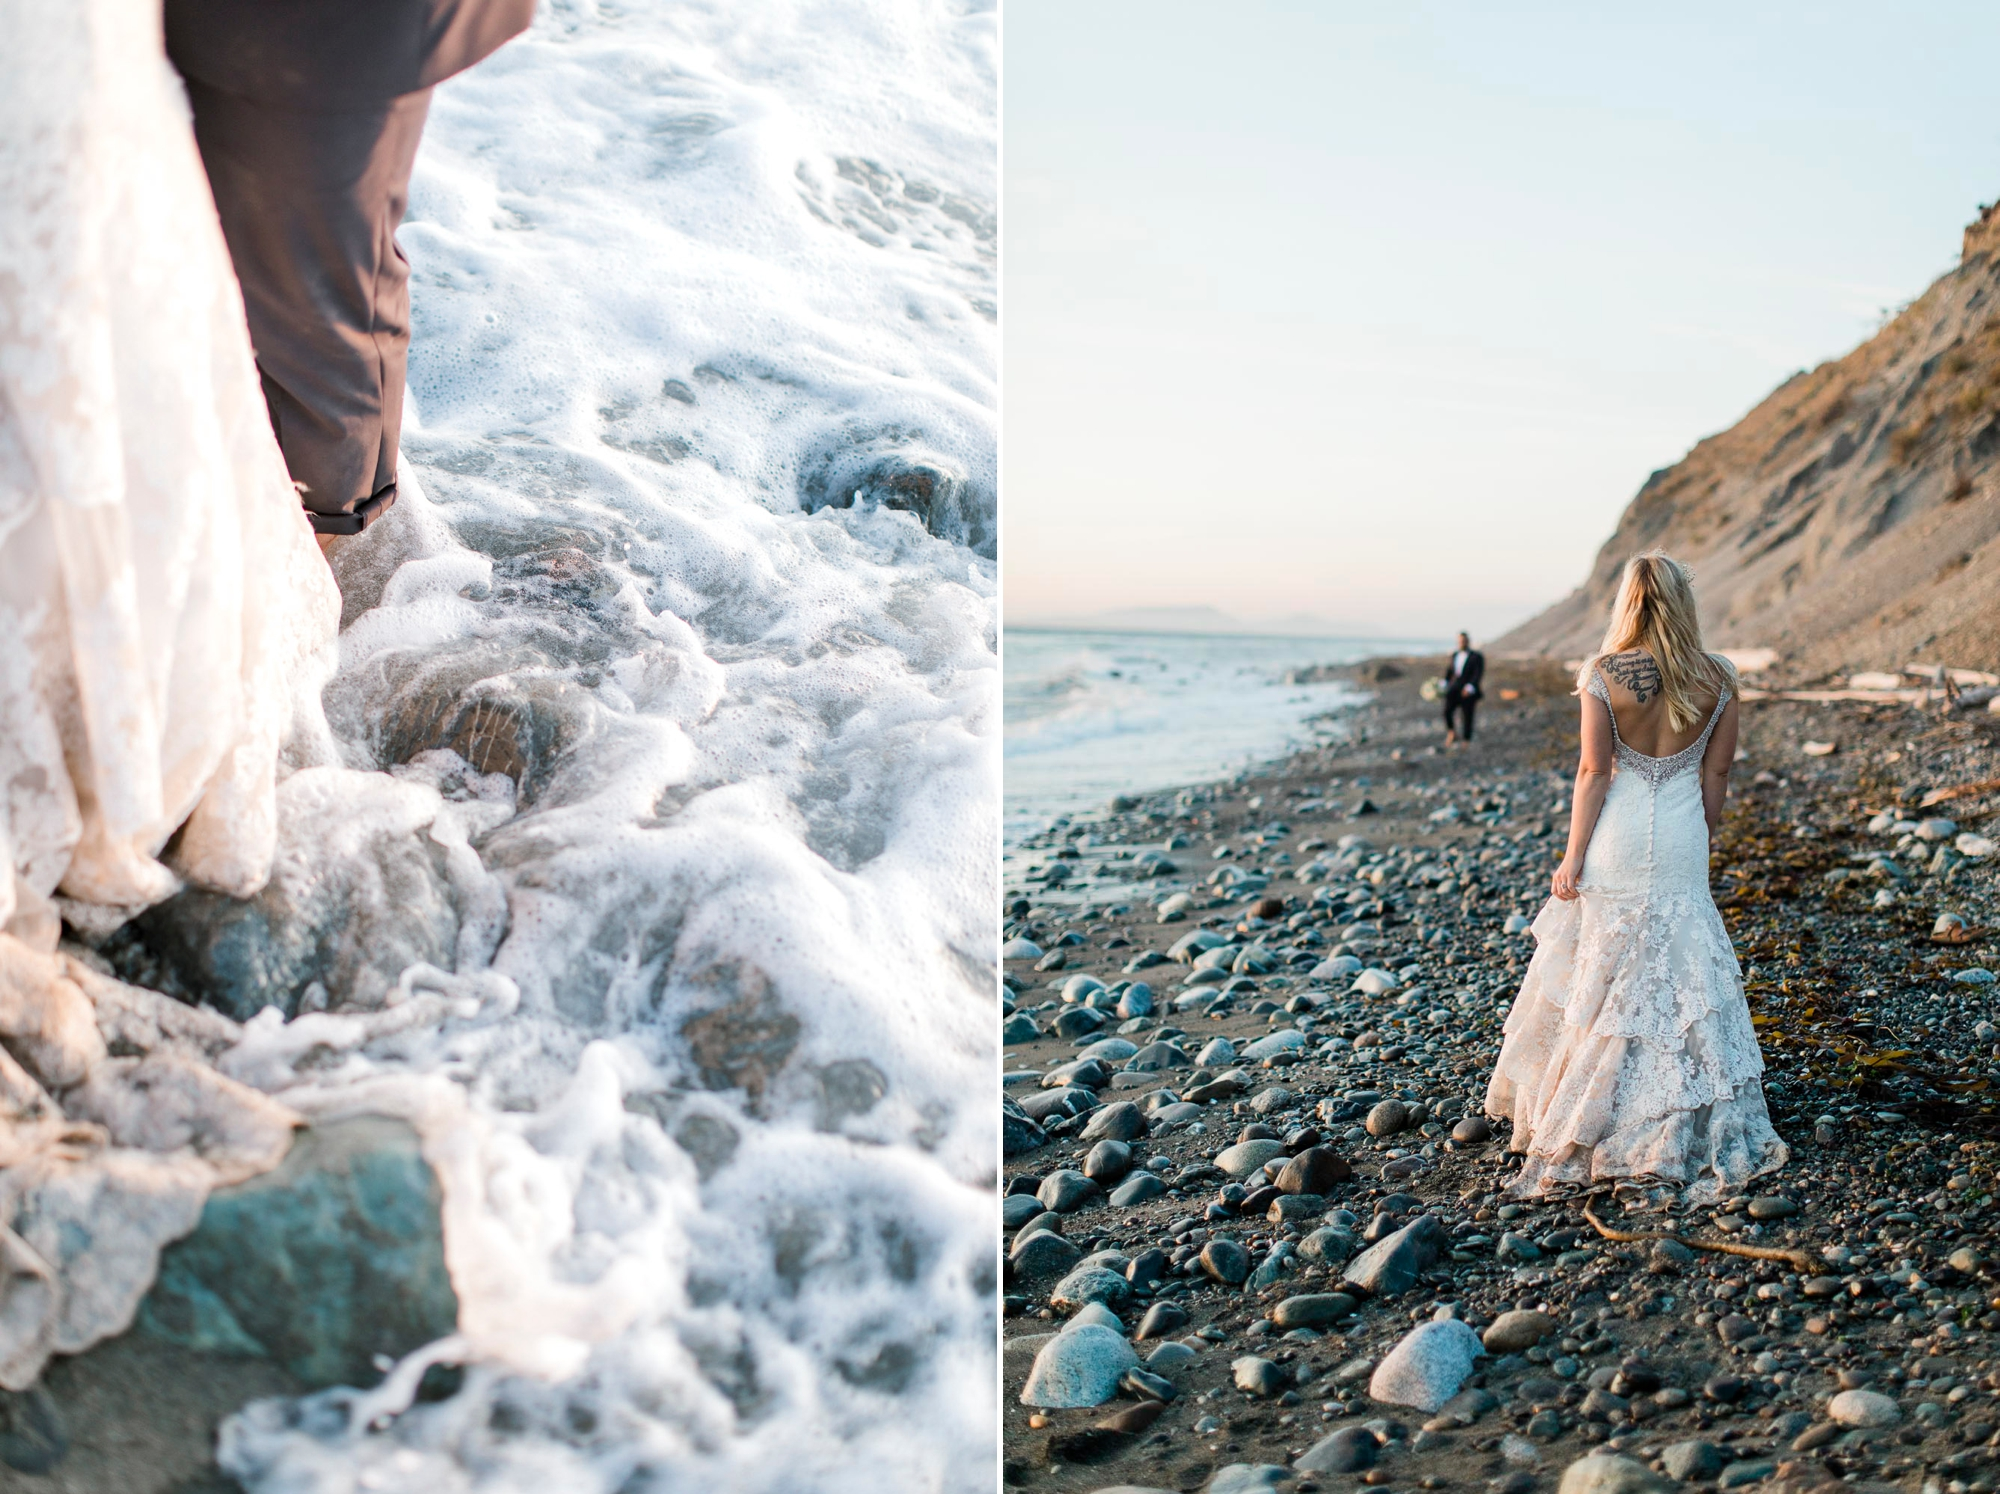 Cassandra just might be my favorite bride ever - no fear in getting her dress dirty. I love an adventurous bride!